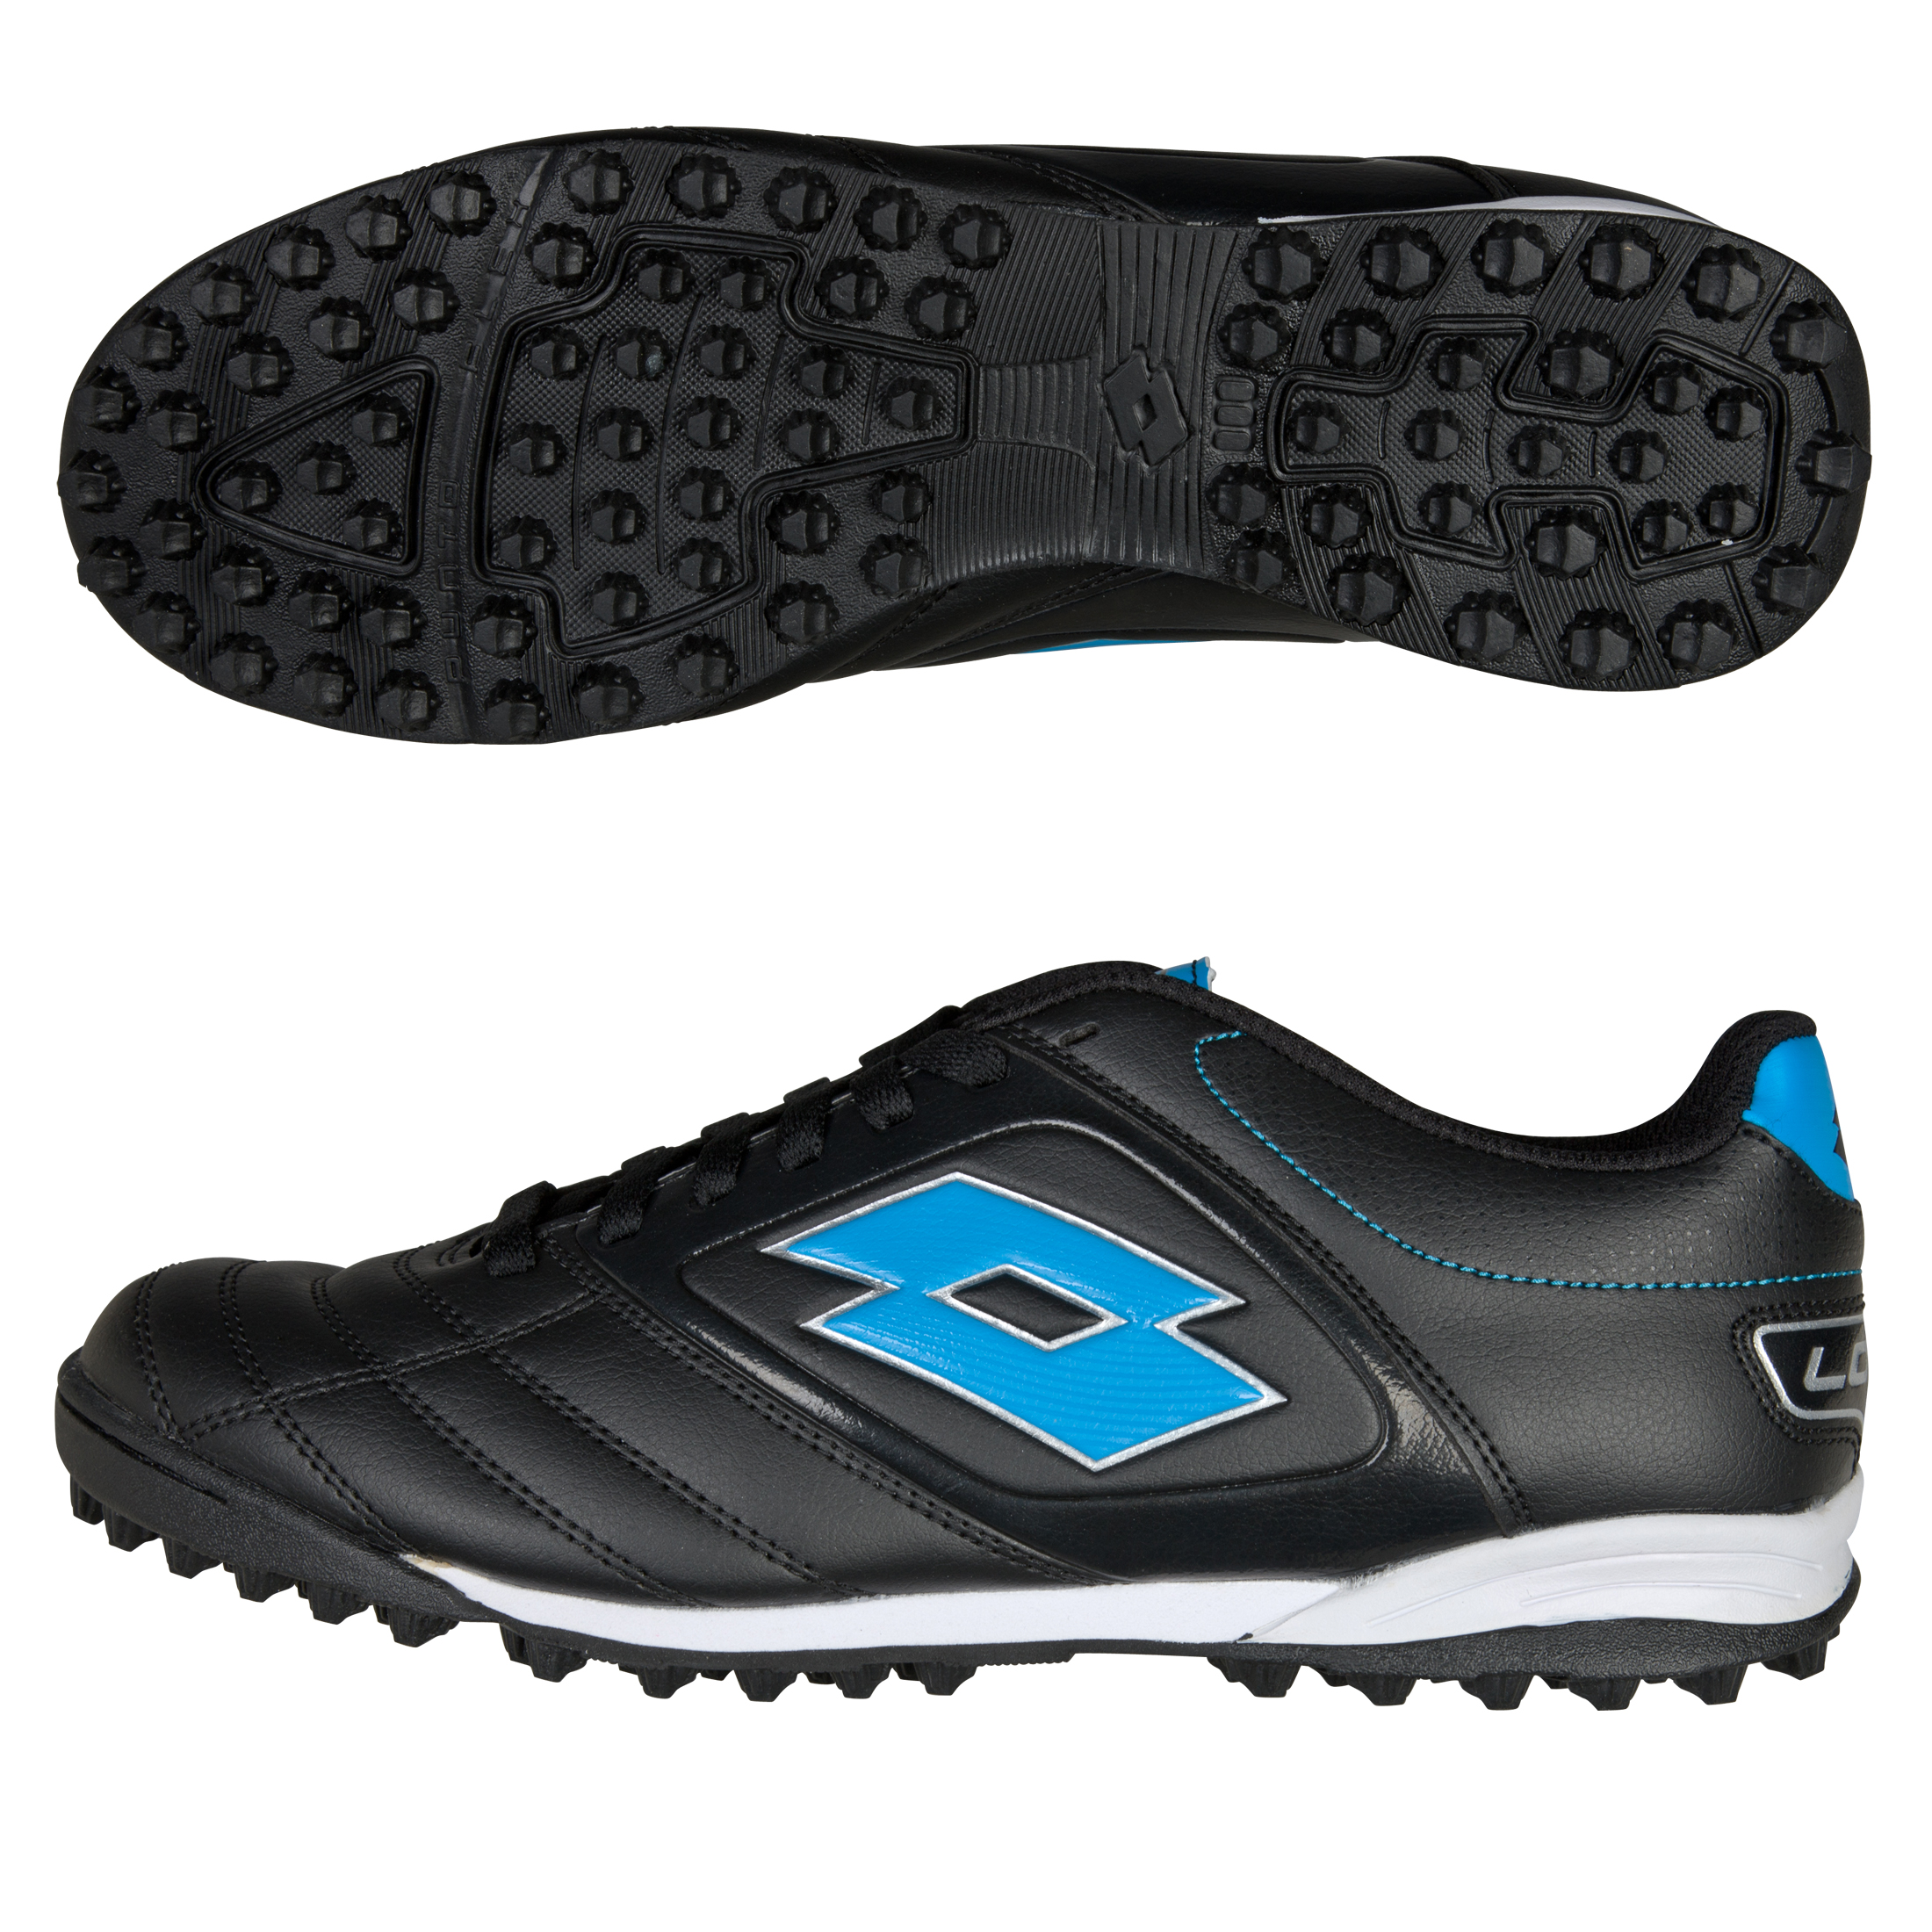 Lotto Stadio Potenza 500 Astro Turf Trainers - Black/Blue Fluo